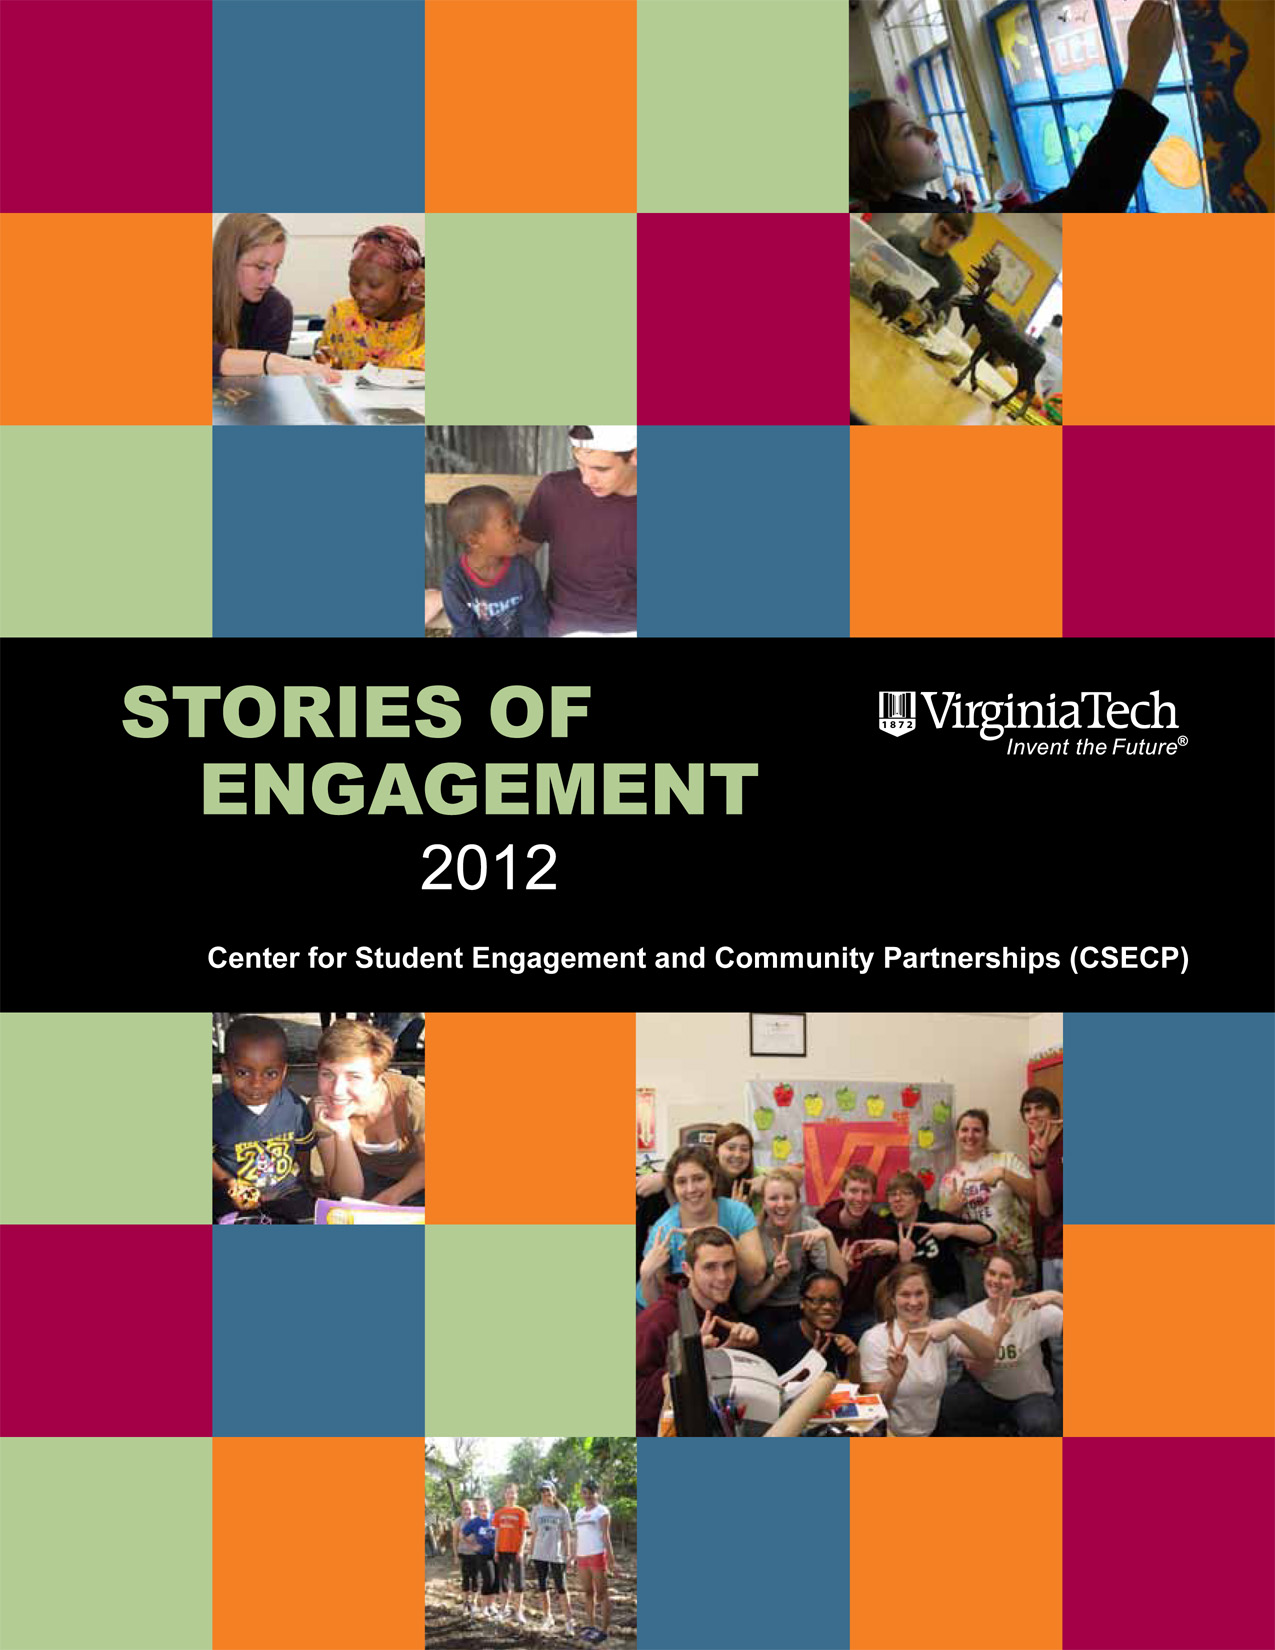 Stories of Engagement